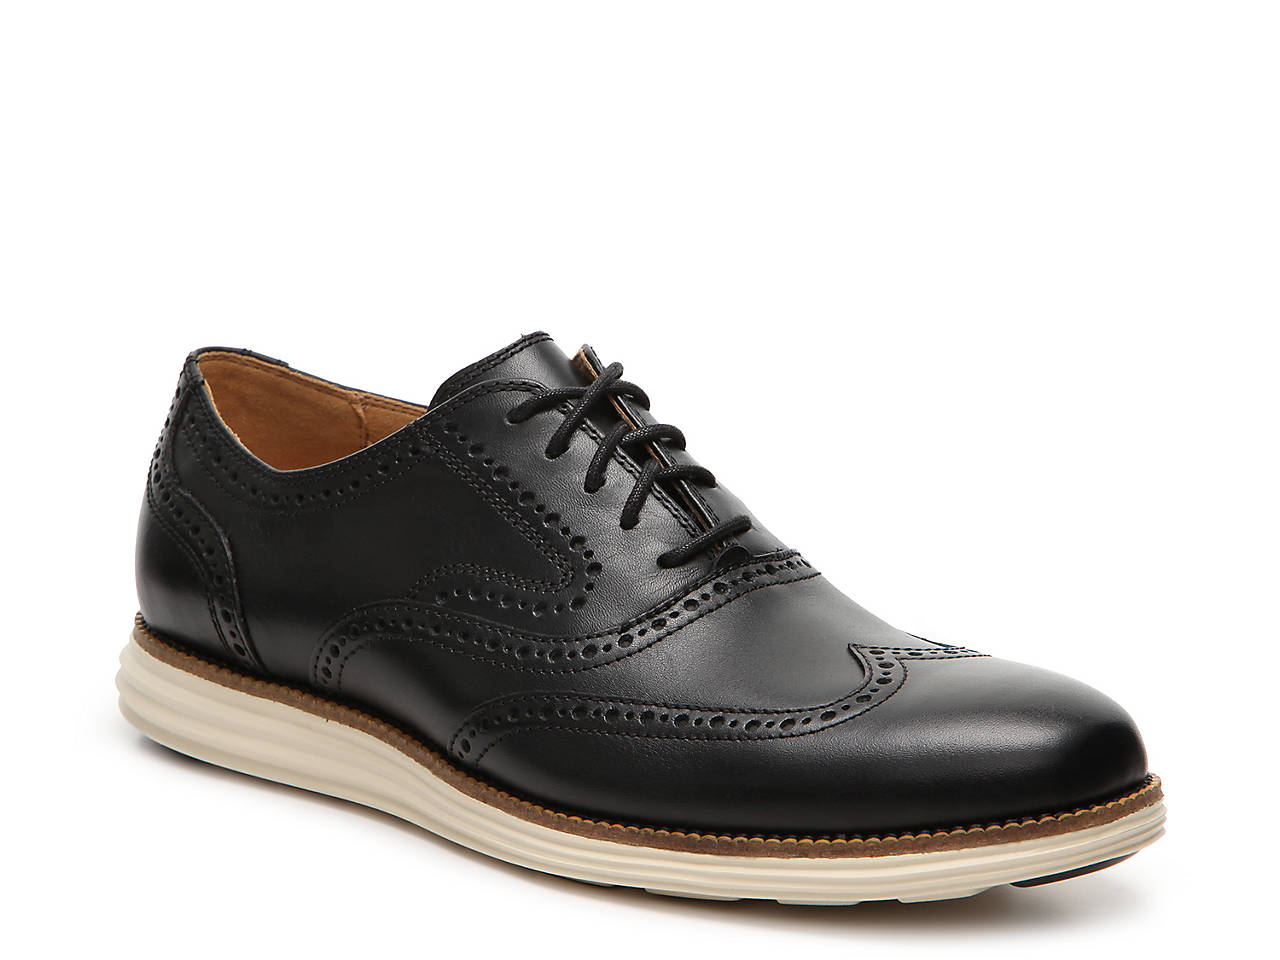 Cole Haan Men's Original Grand Wing Oxfords Men's Shoes